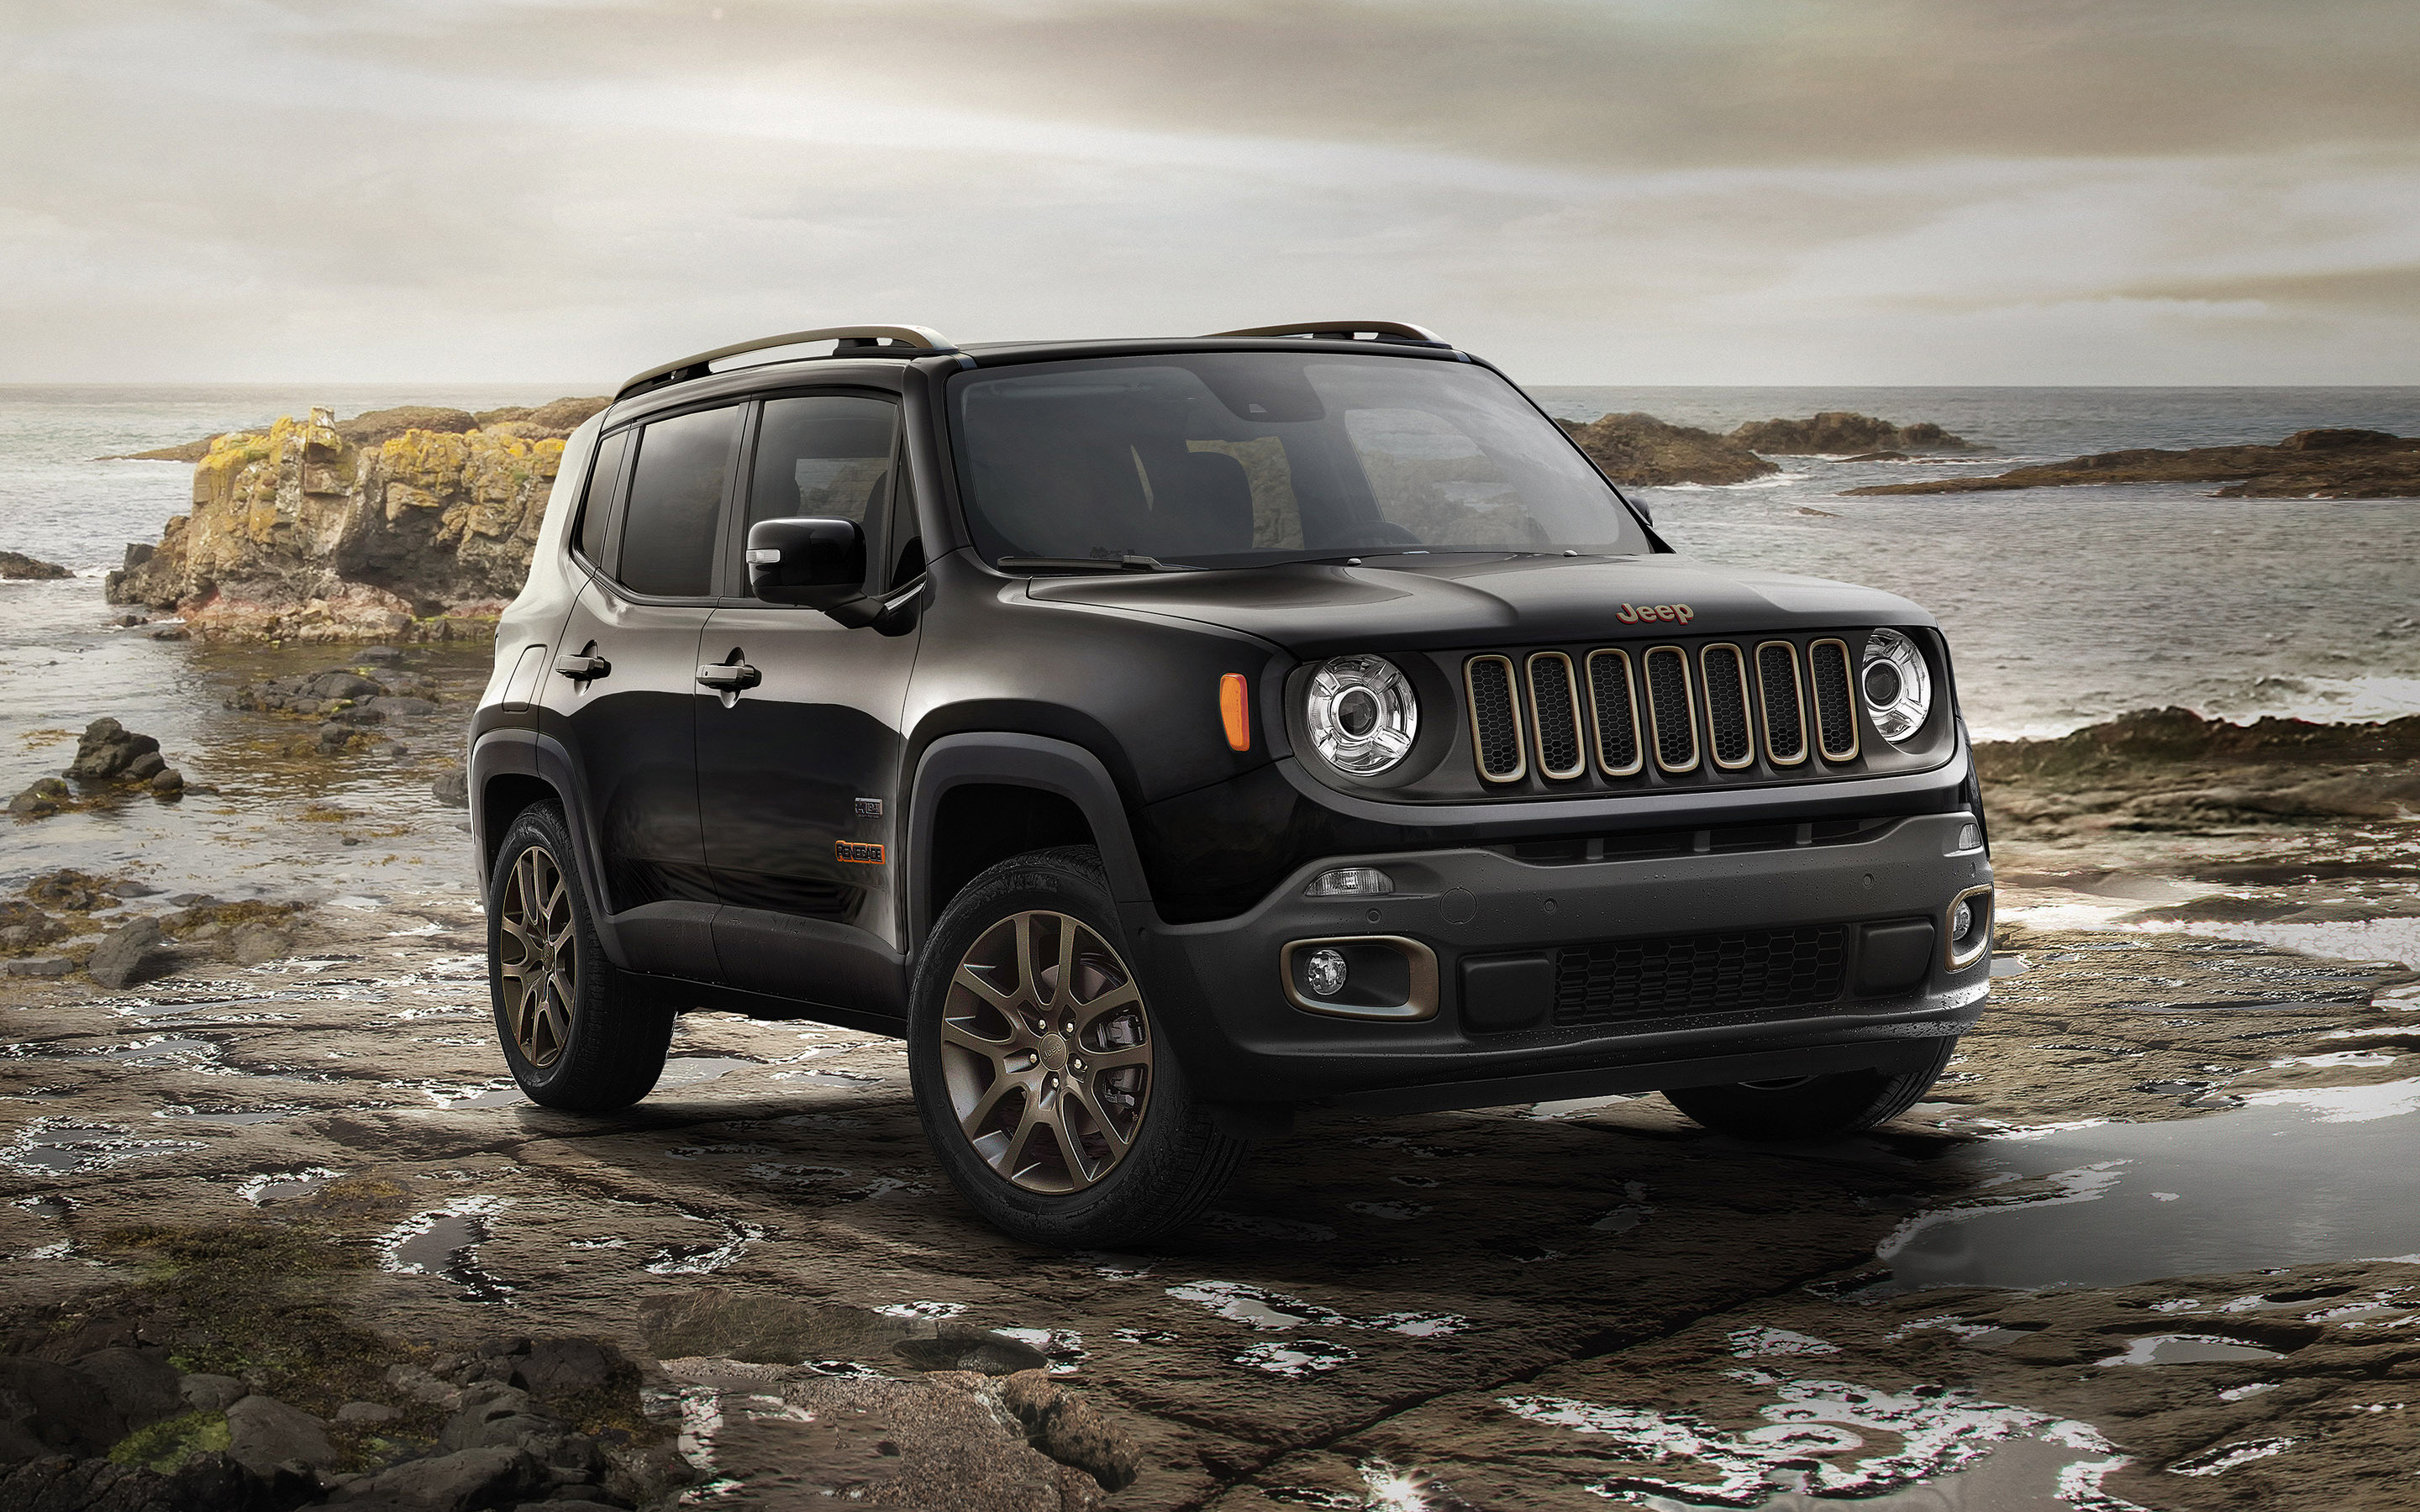 Res: 2880x1800, 2016 Jeep Renegade 75th Anniversary